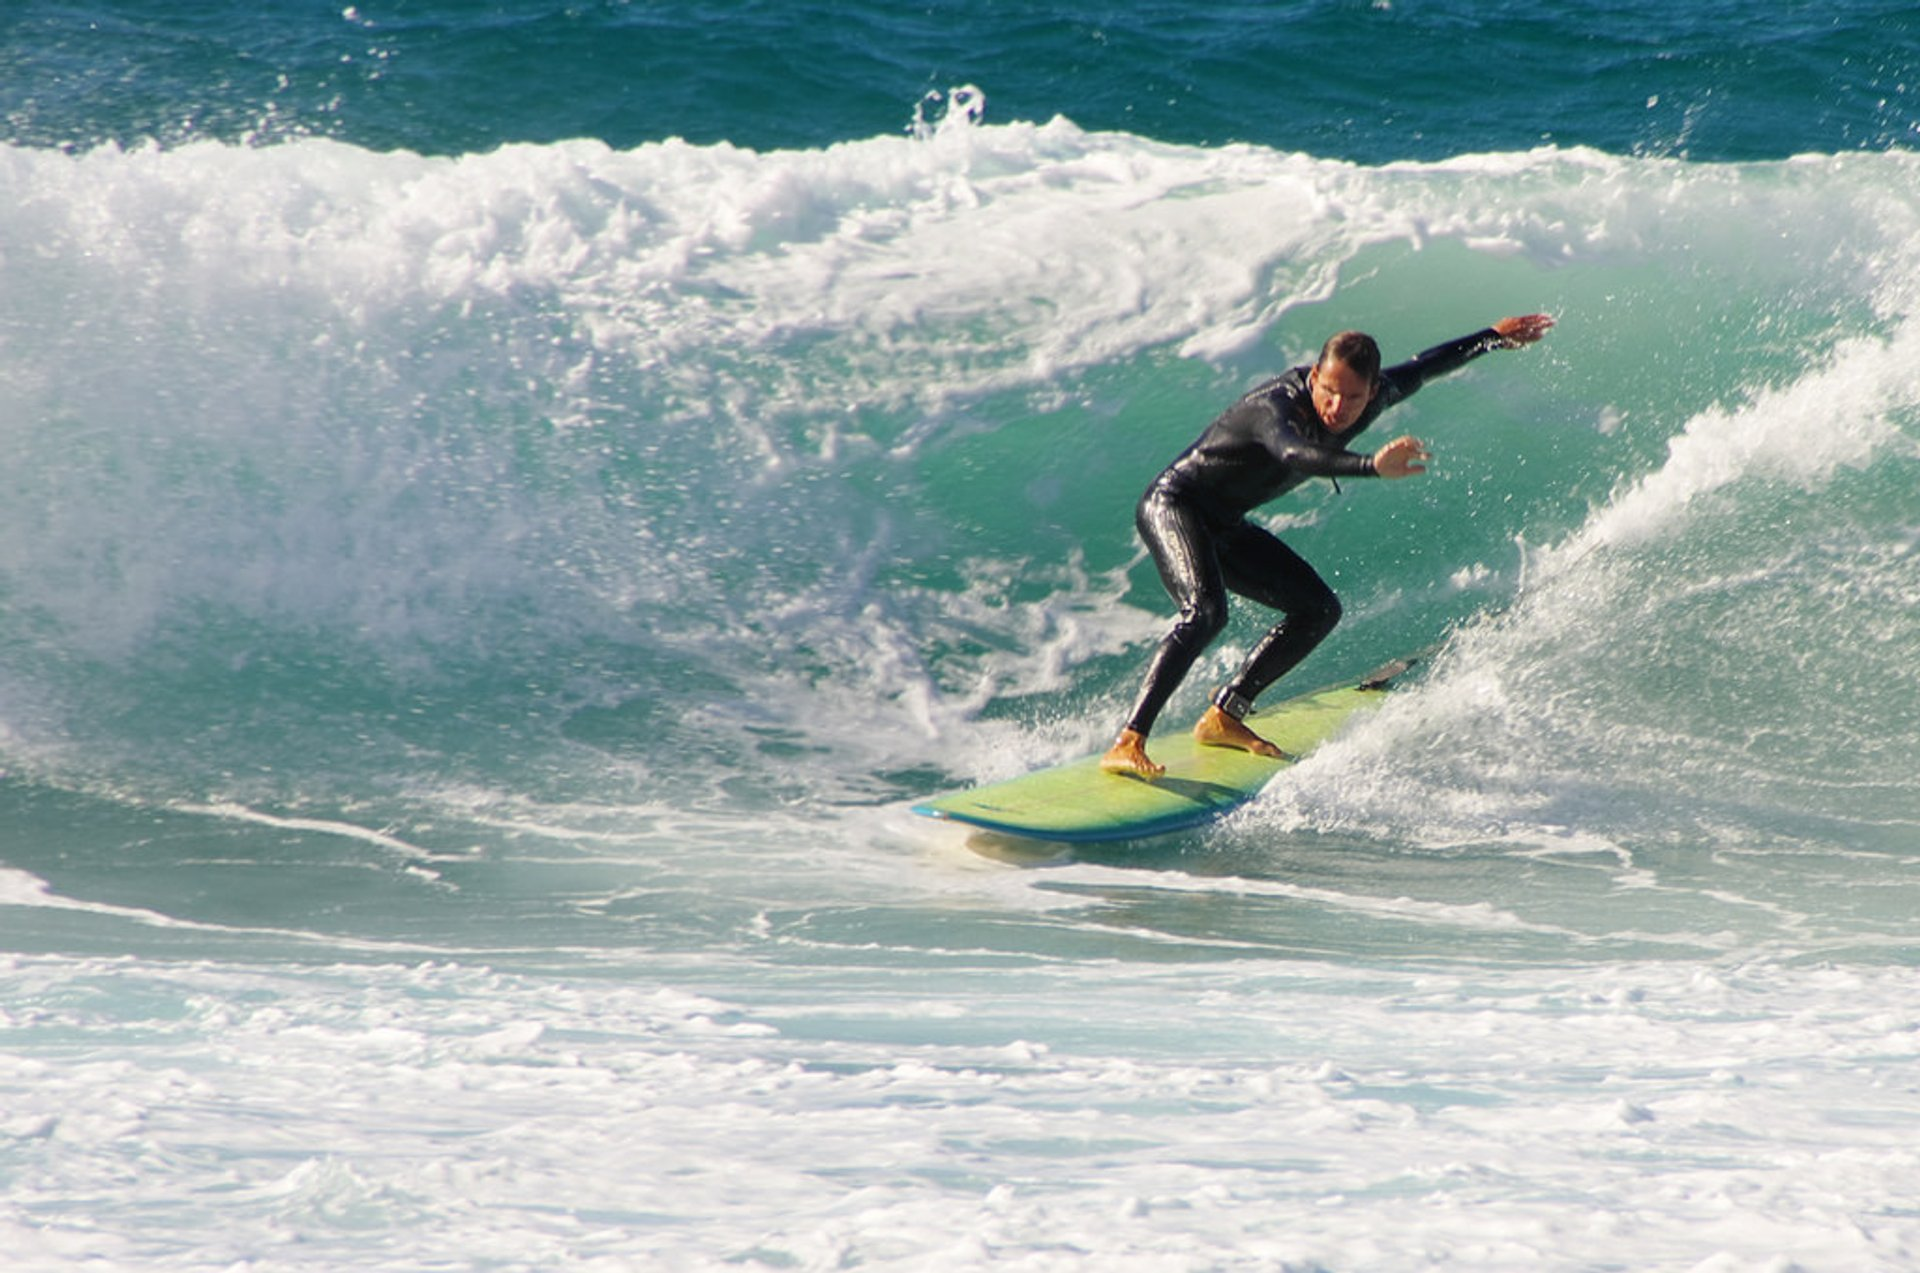 Surfing in Corsica 2020 - Best Time